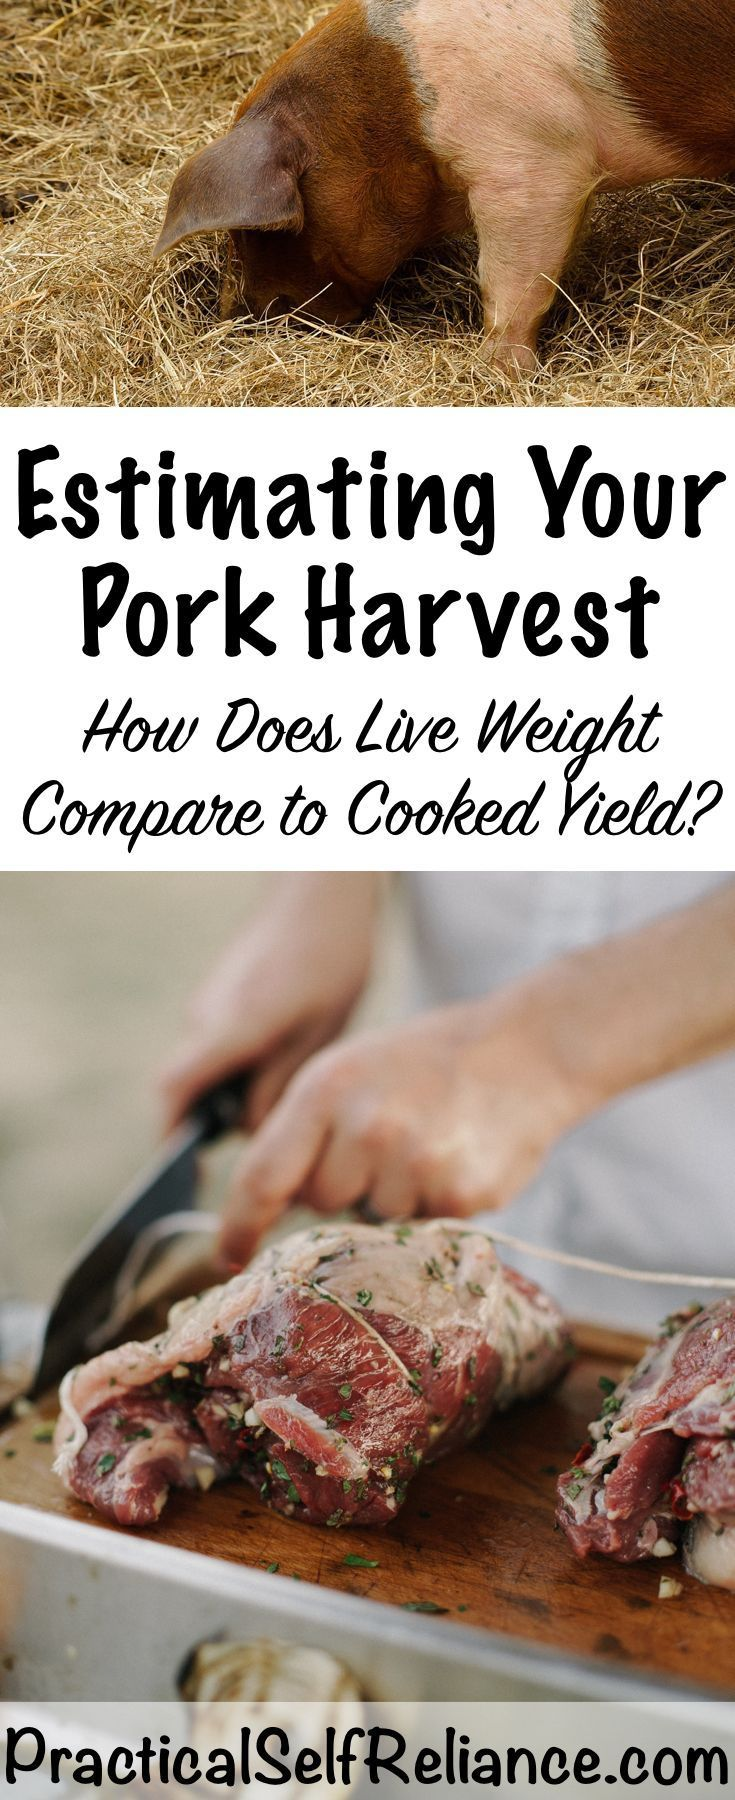 Estimating Your Pork Harvest: How Does Live Weight Compare to Cooked Yield?